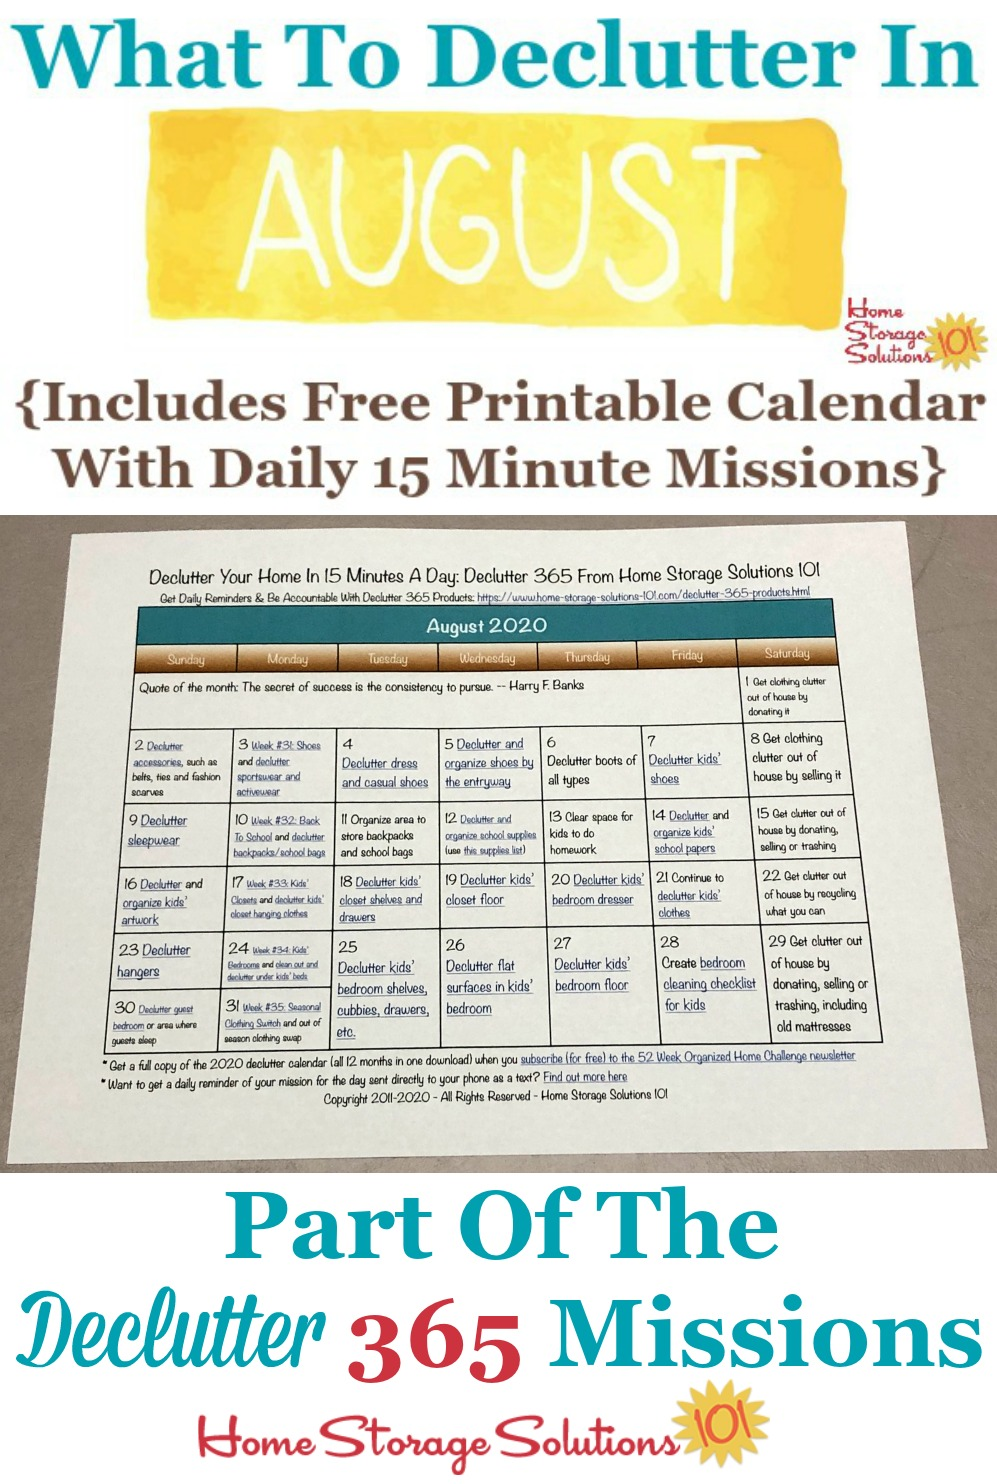 What to declutter in August 2020, including a free printable August decluttering calendar you can follow each day {on Home Storage Solutions 101} #Declutter365 #Decluttering #Declutter